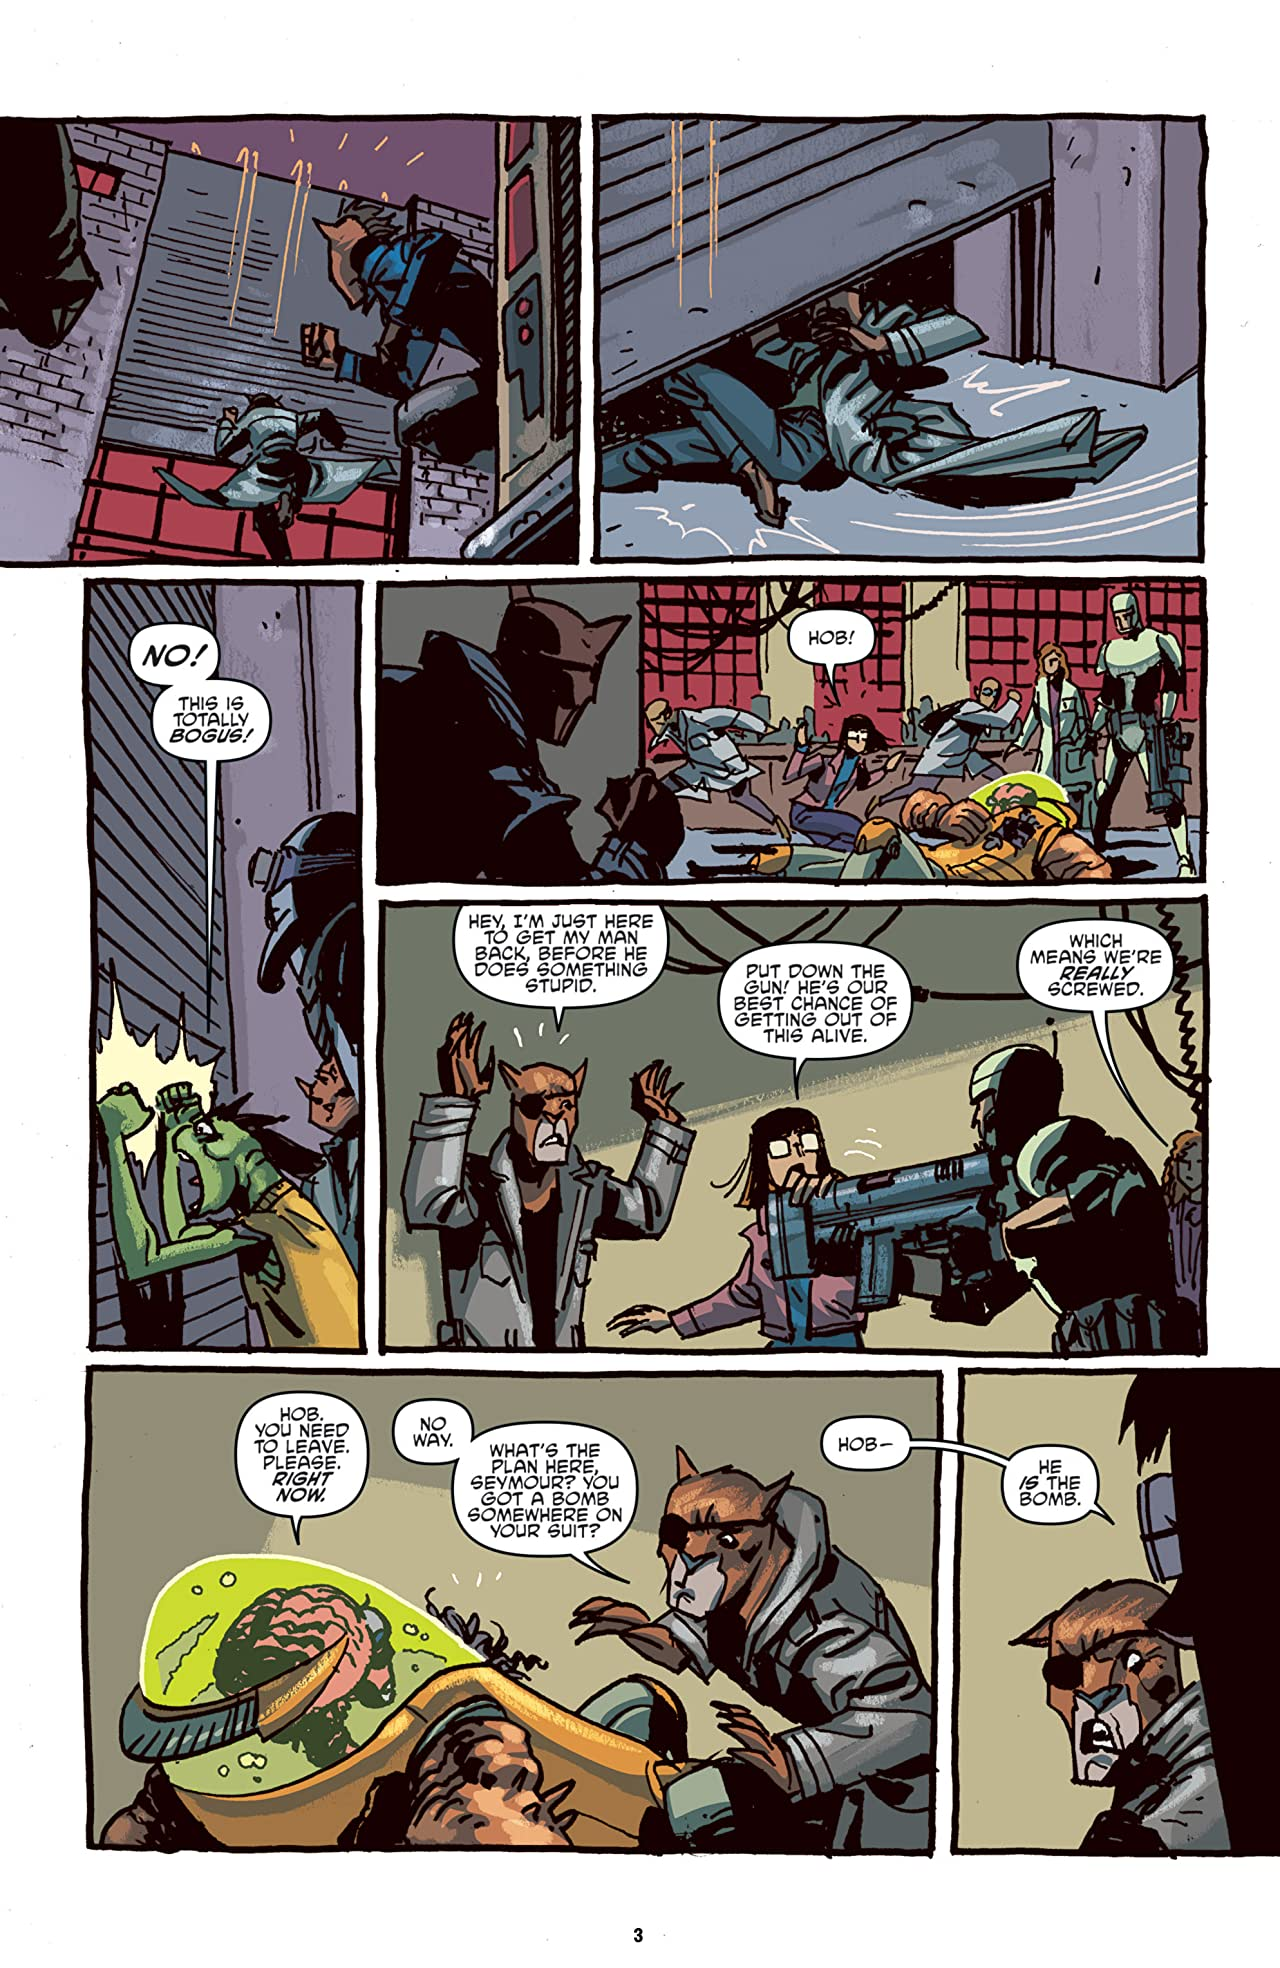 Teenage Mutant Ninja Turtles: Mutanimals #4 (of 4)